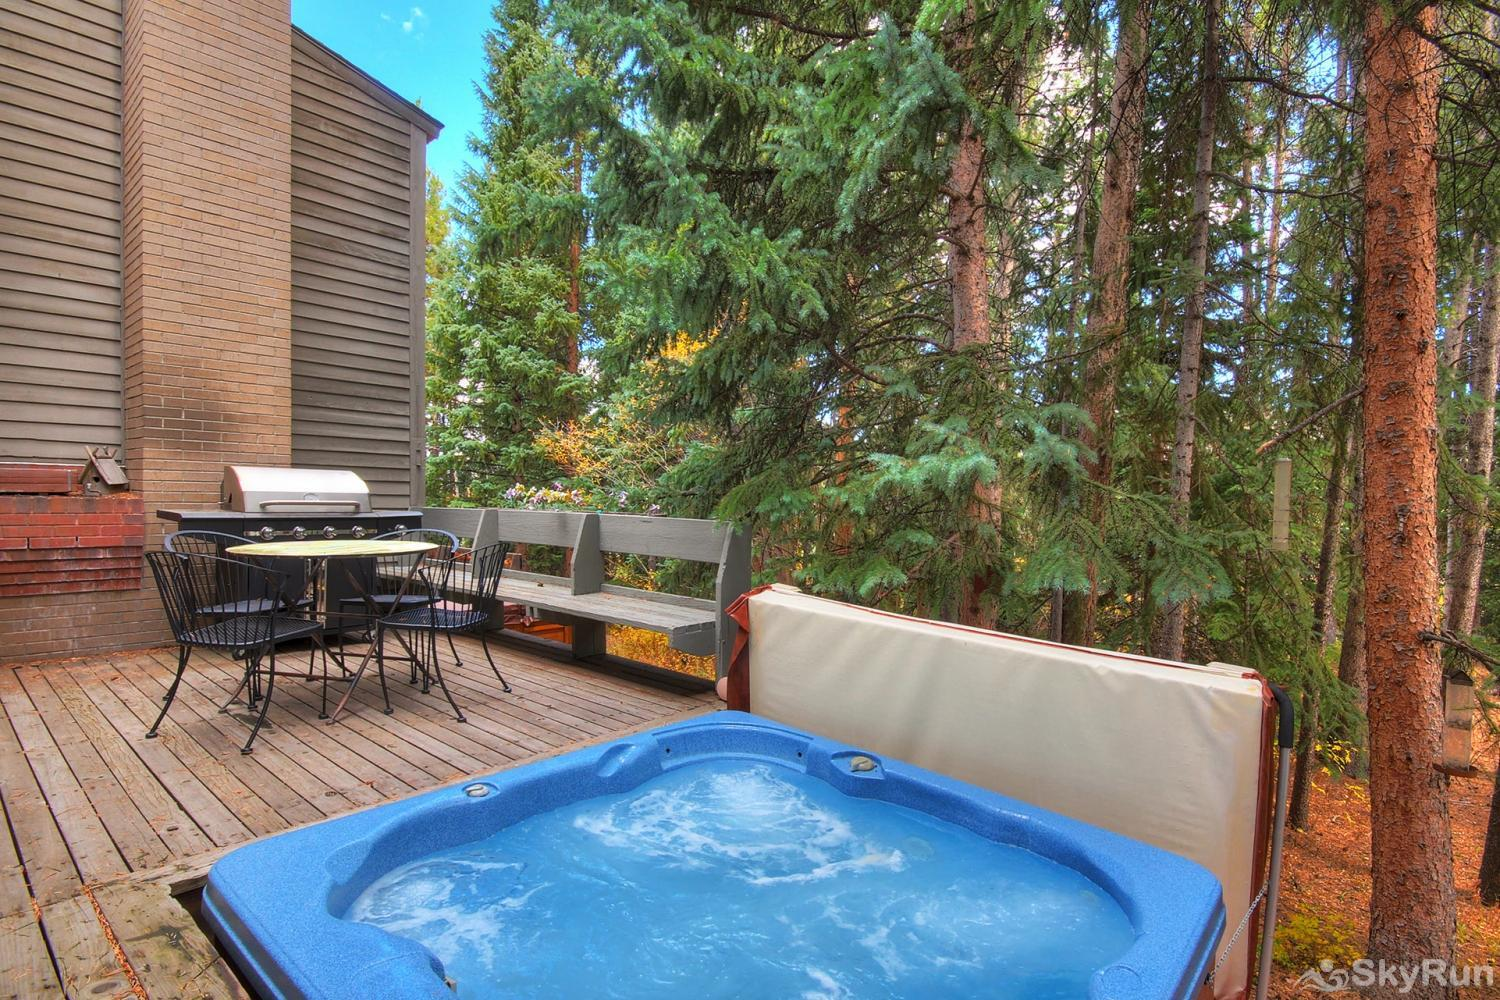 Peace In The Pines Soak your achy muscles in your private hot tub after a day of fun-filled activities